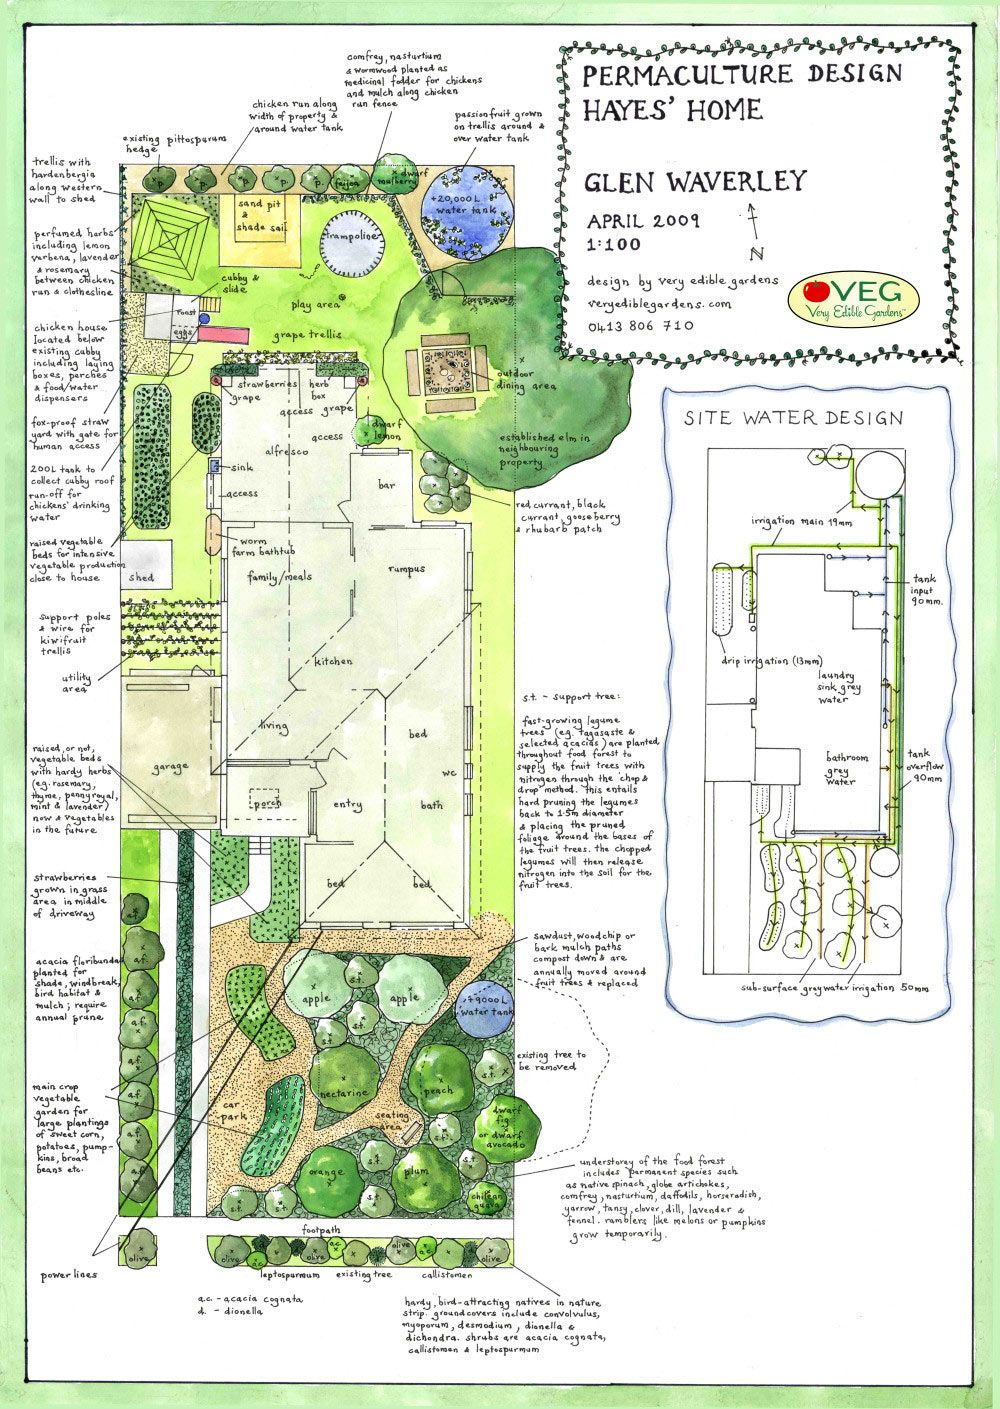 101 Permaculture Designs | Permaculture, Homesteads and ...